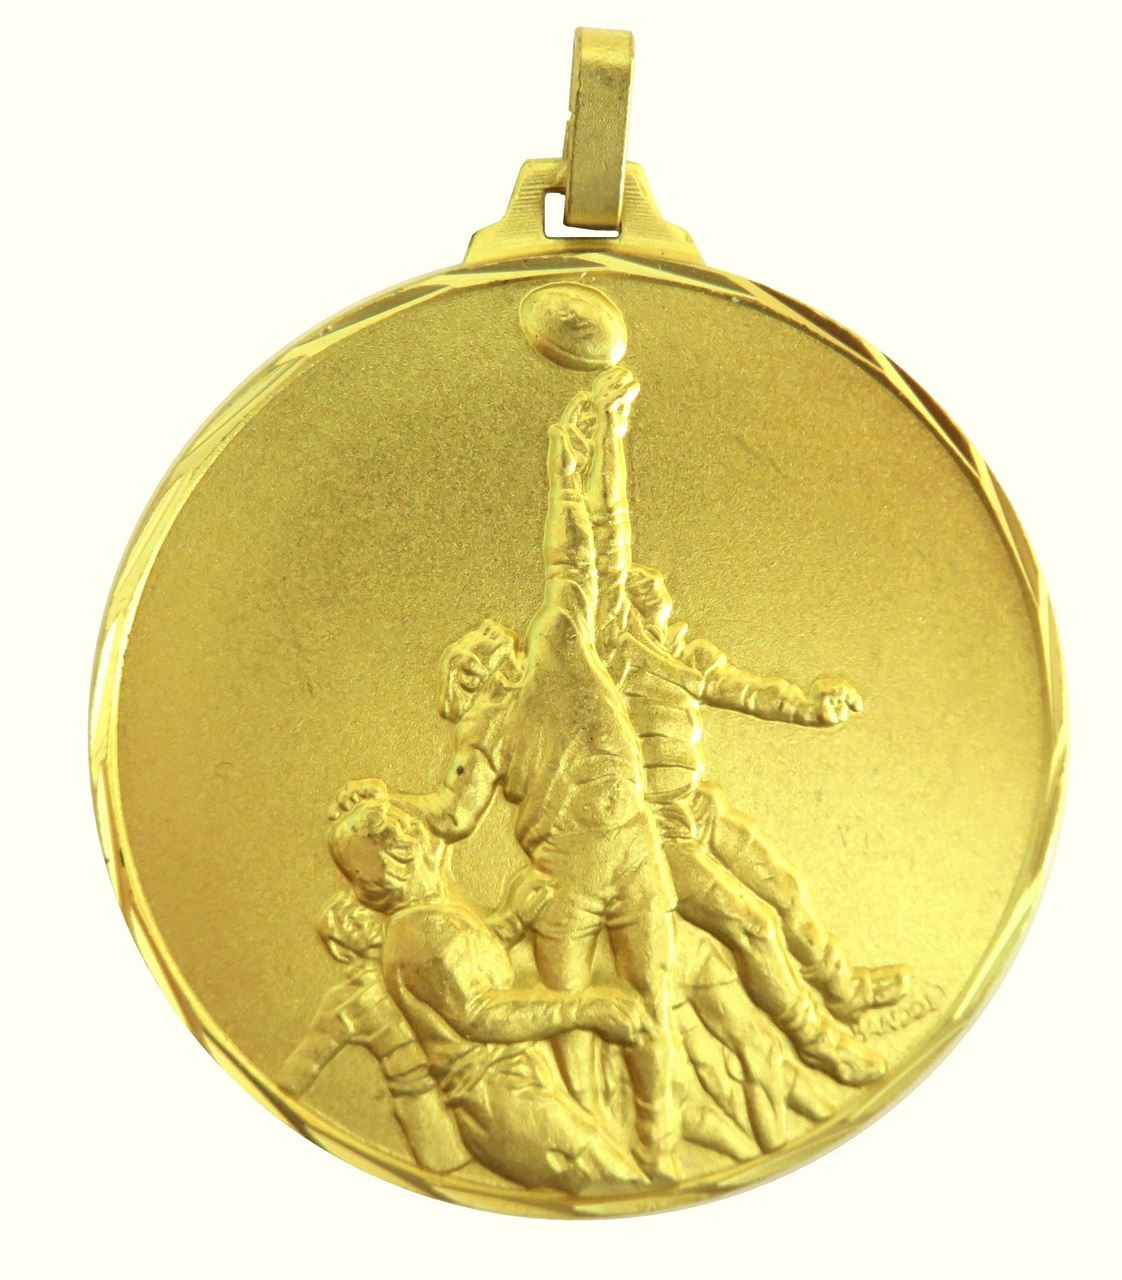 Gold Faceted Rugby Lineout Medal (size: 42mm and 52mm) - 281F